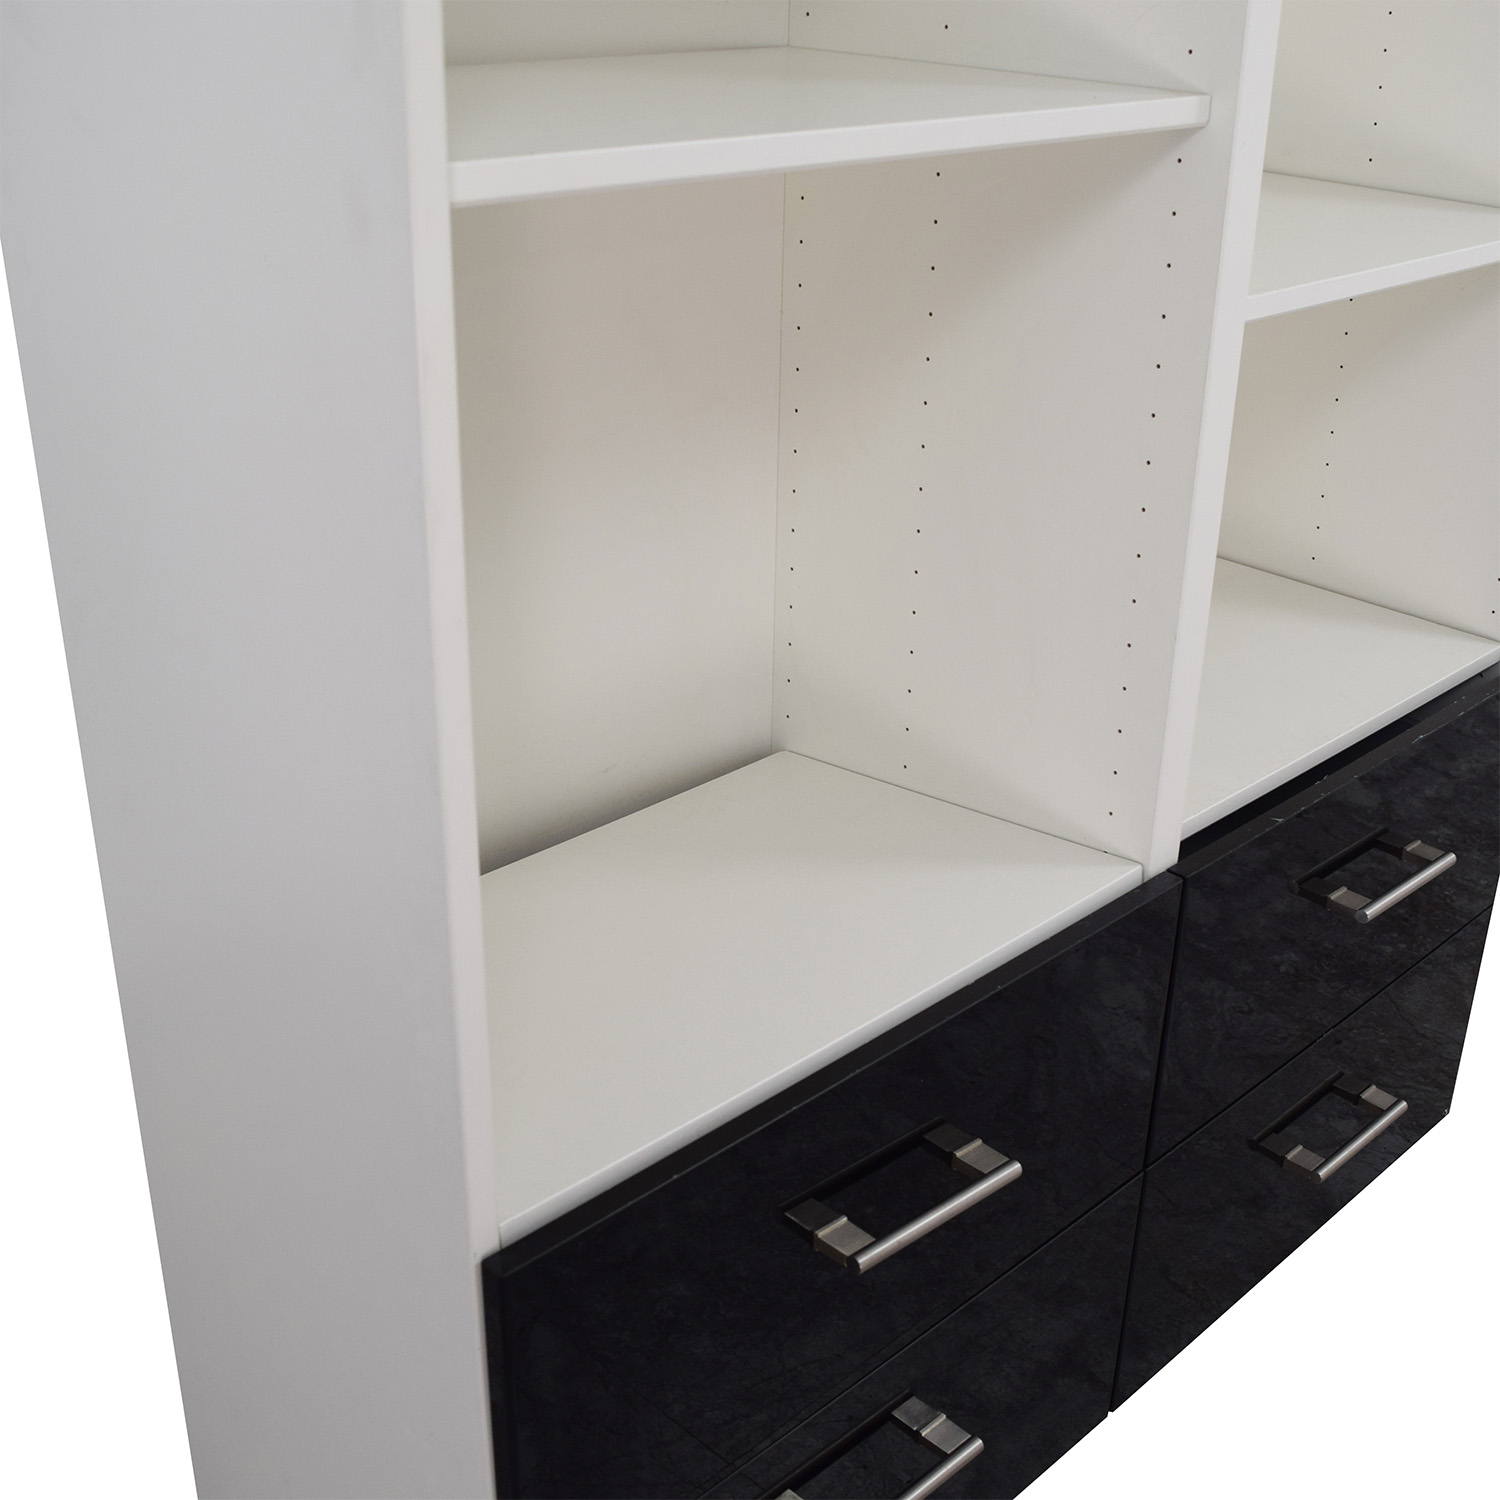 IKEA IKEA Double Shelf and Drawer Set nj